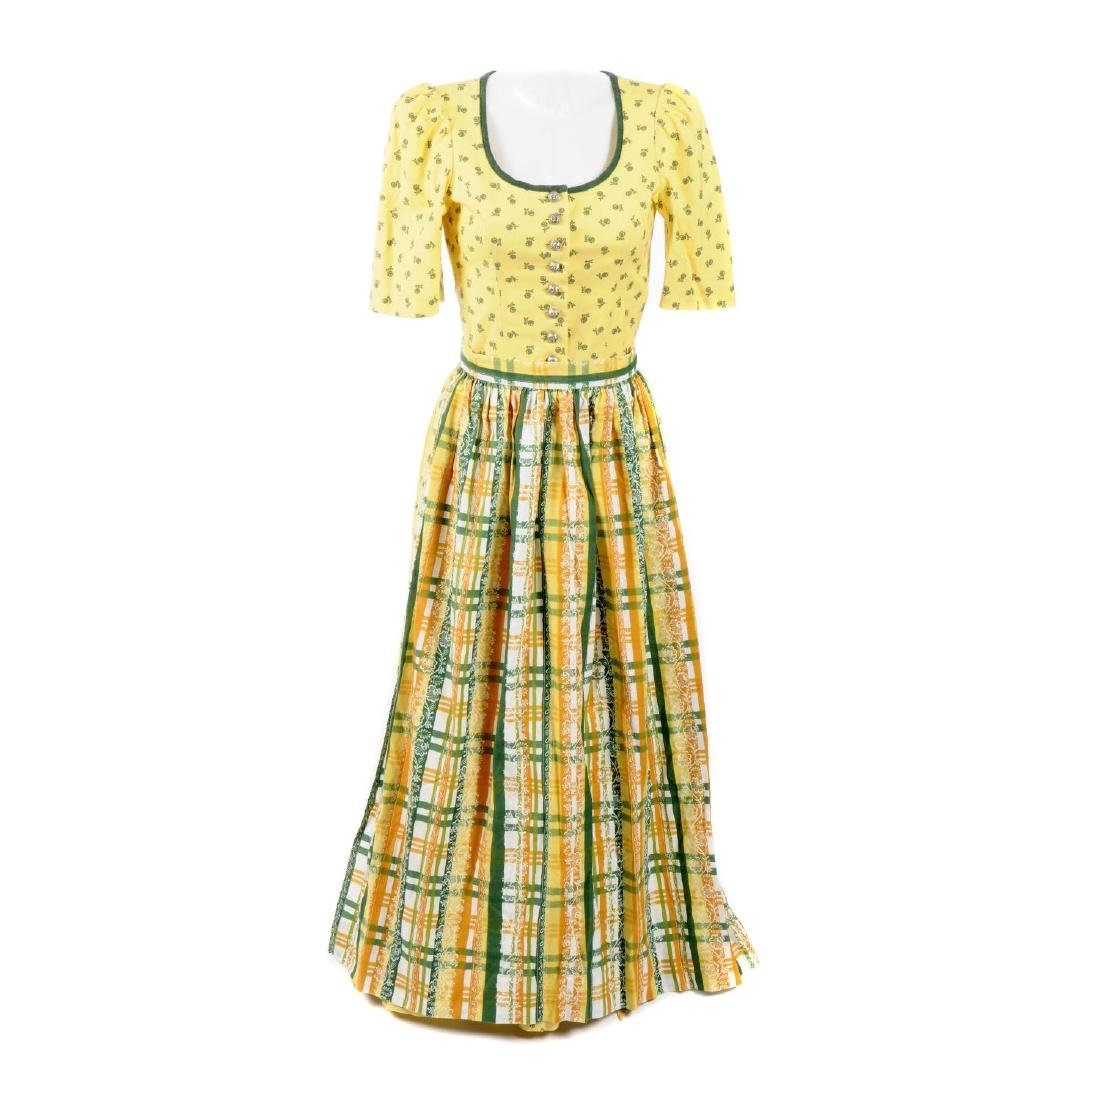 SPORTALM - two vintage dirndl dresses with aprons. Two